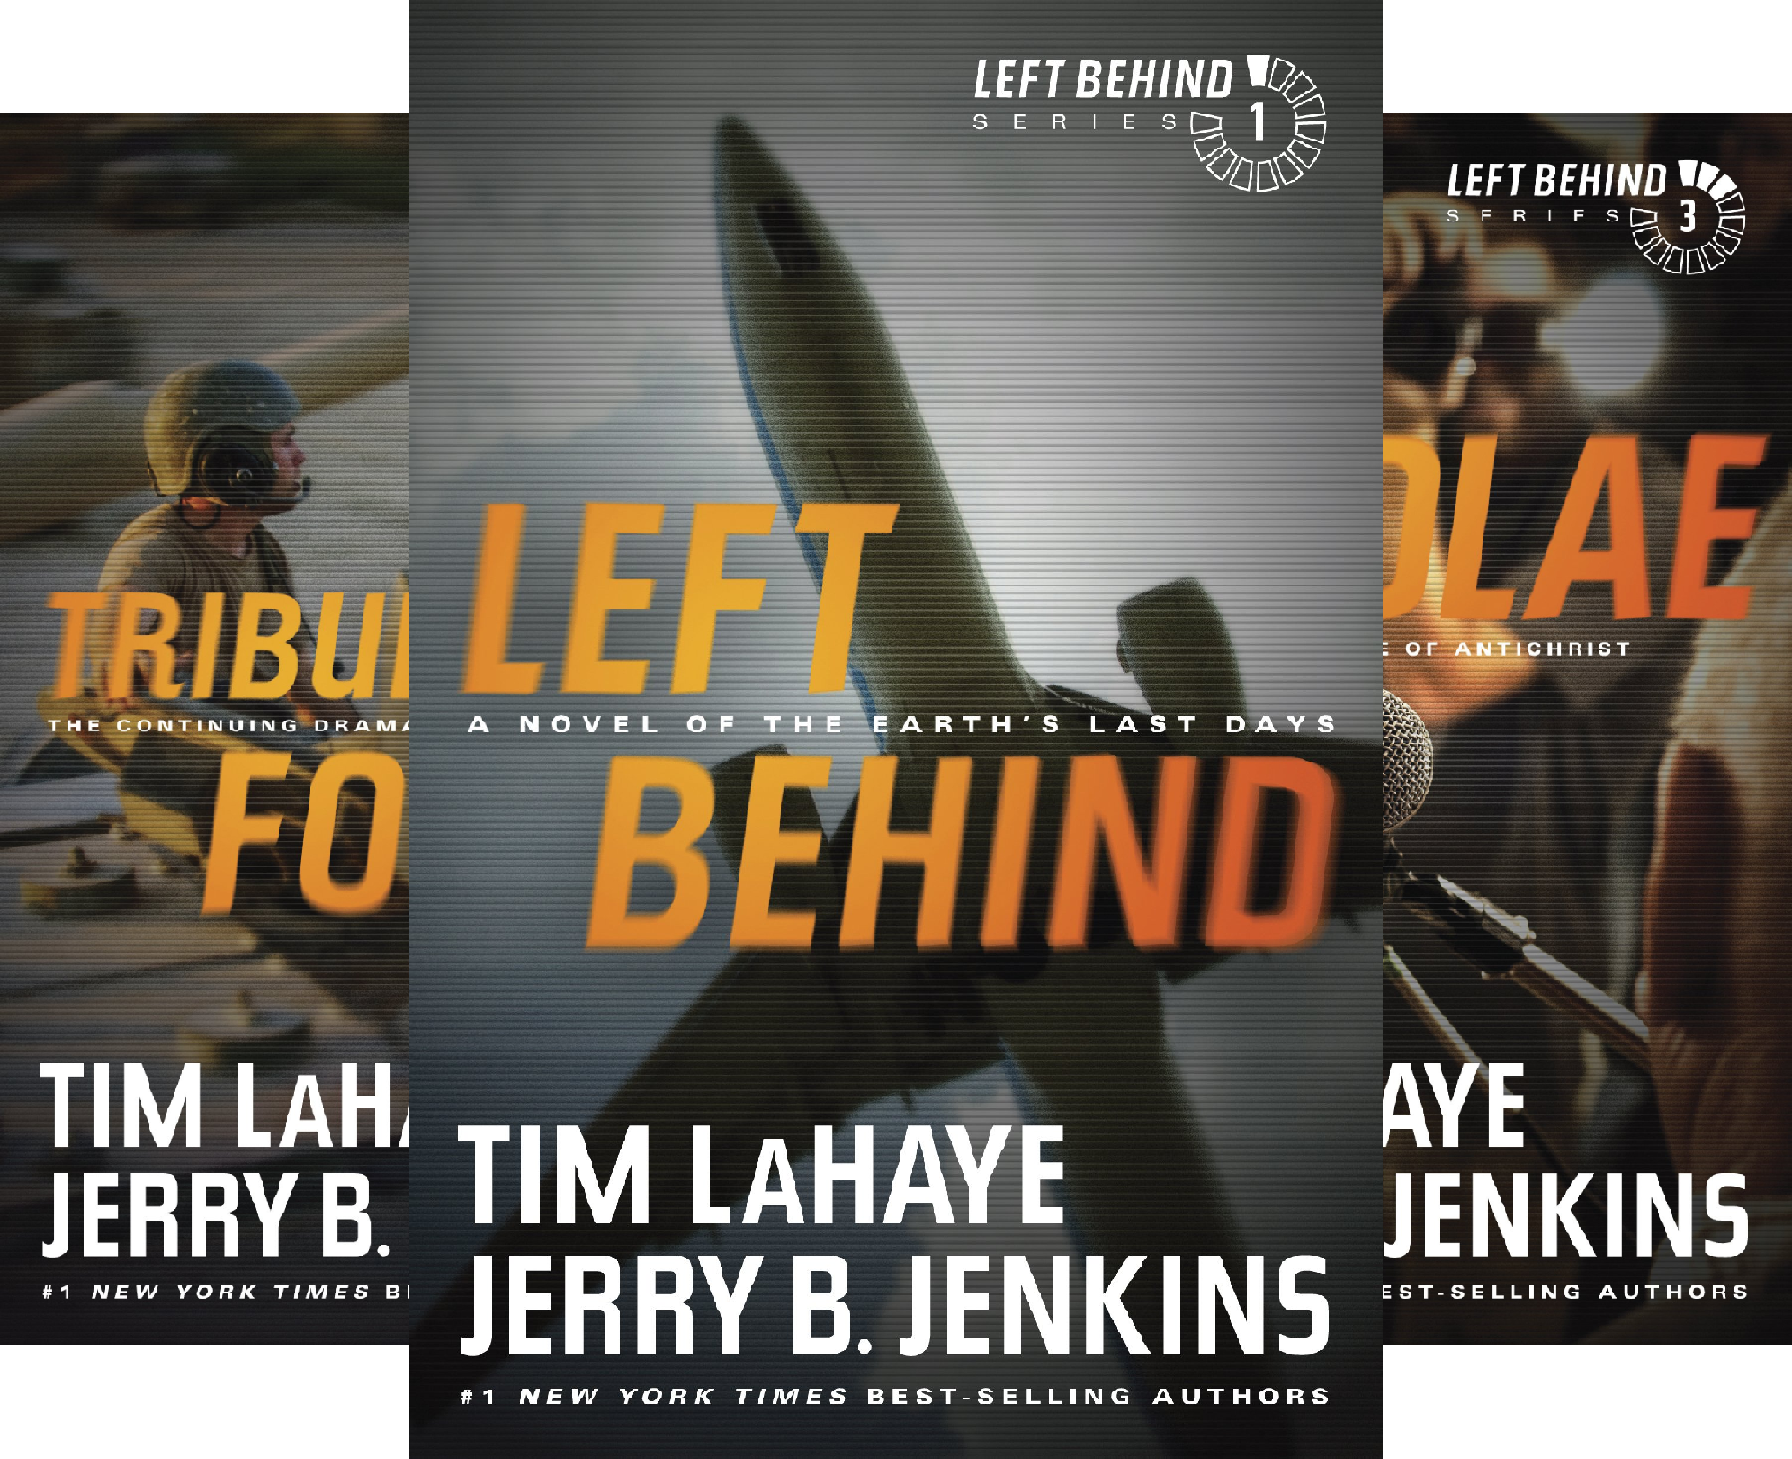 Download Left Behind Collection: Boxed Set Volumes 1-5 (5 Book Series) B017B5UJ6Q